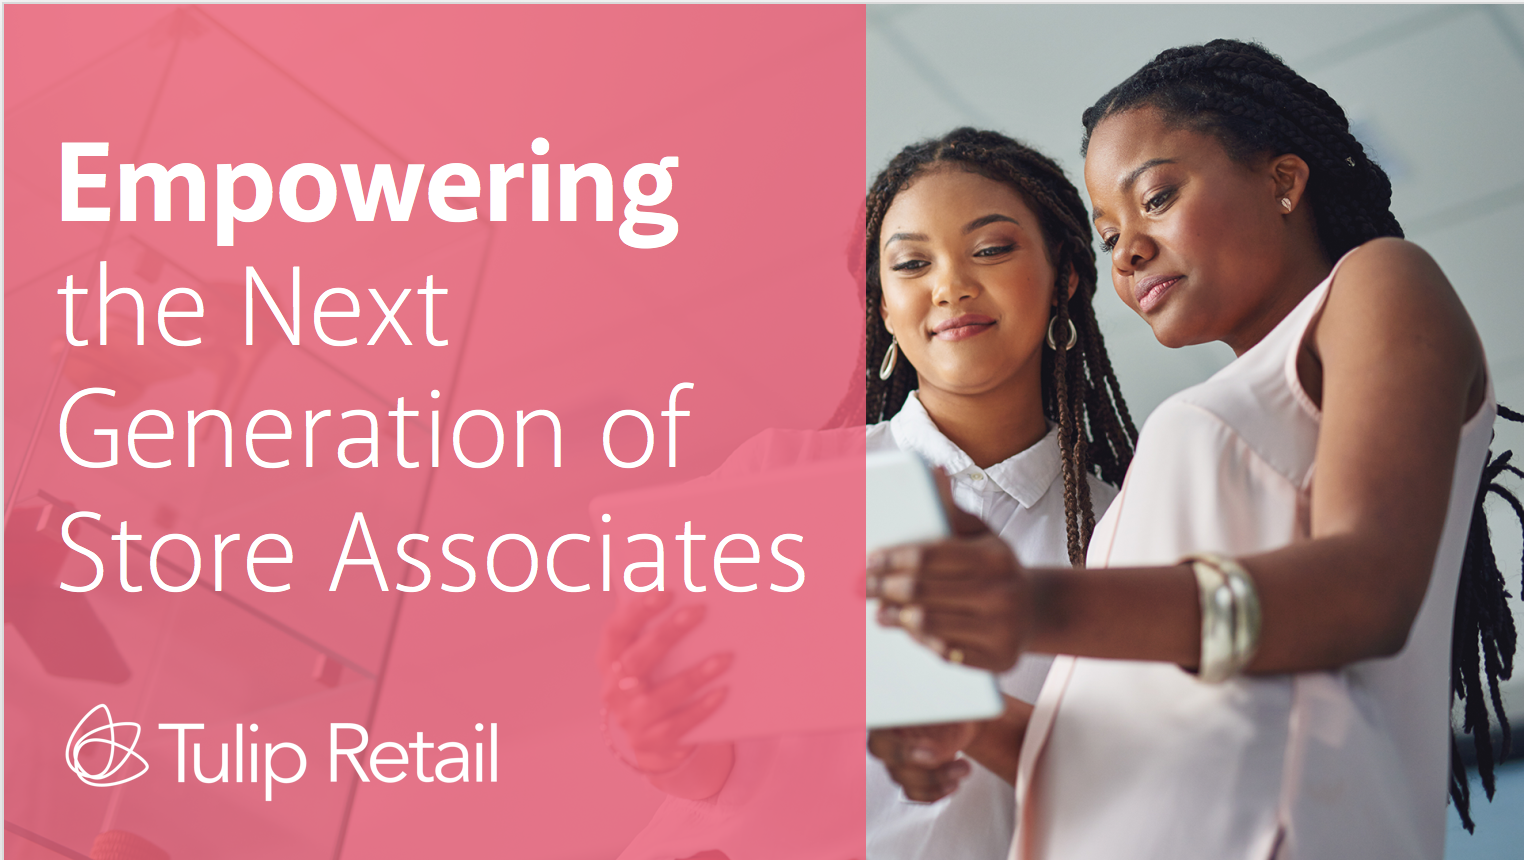 Tulip Retail is a mobile platform built exclusively for store associates to offer a world-class omnichannel experience